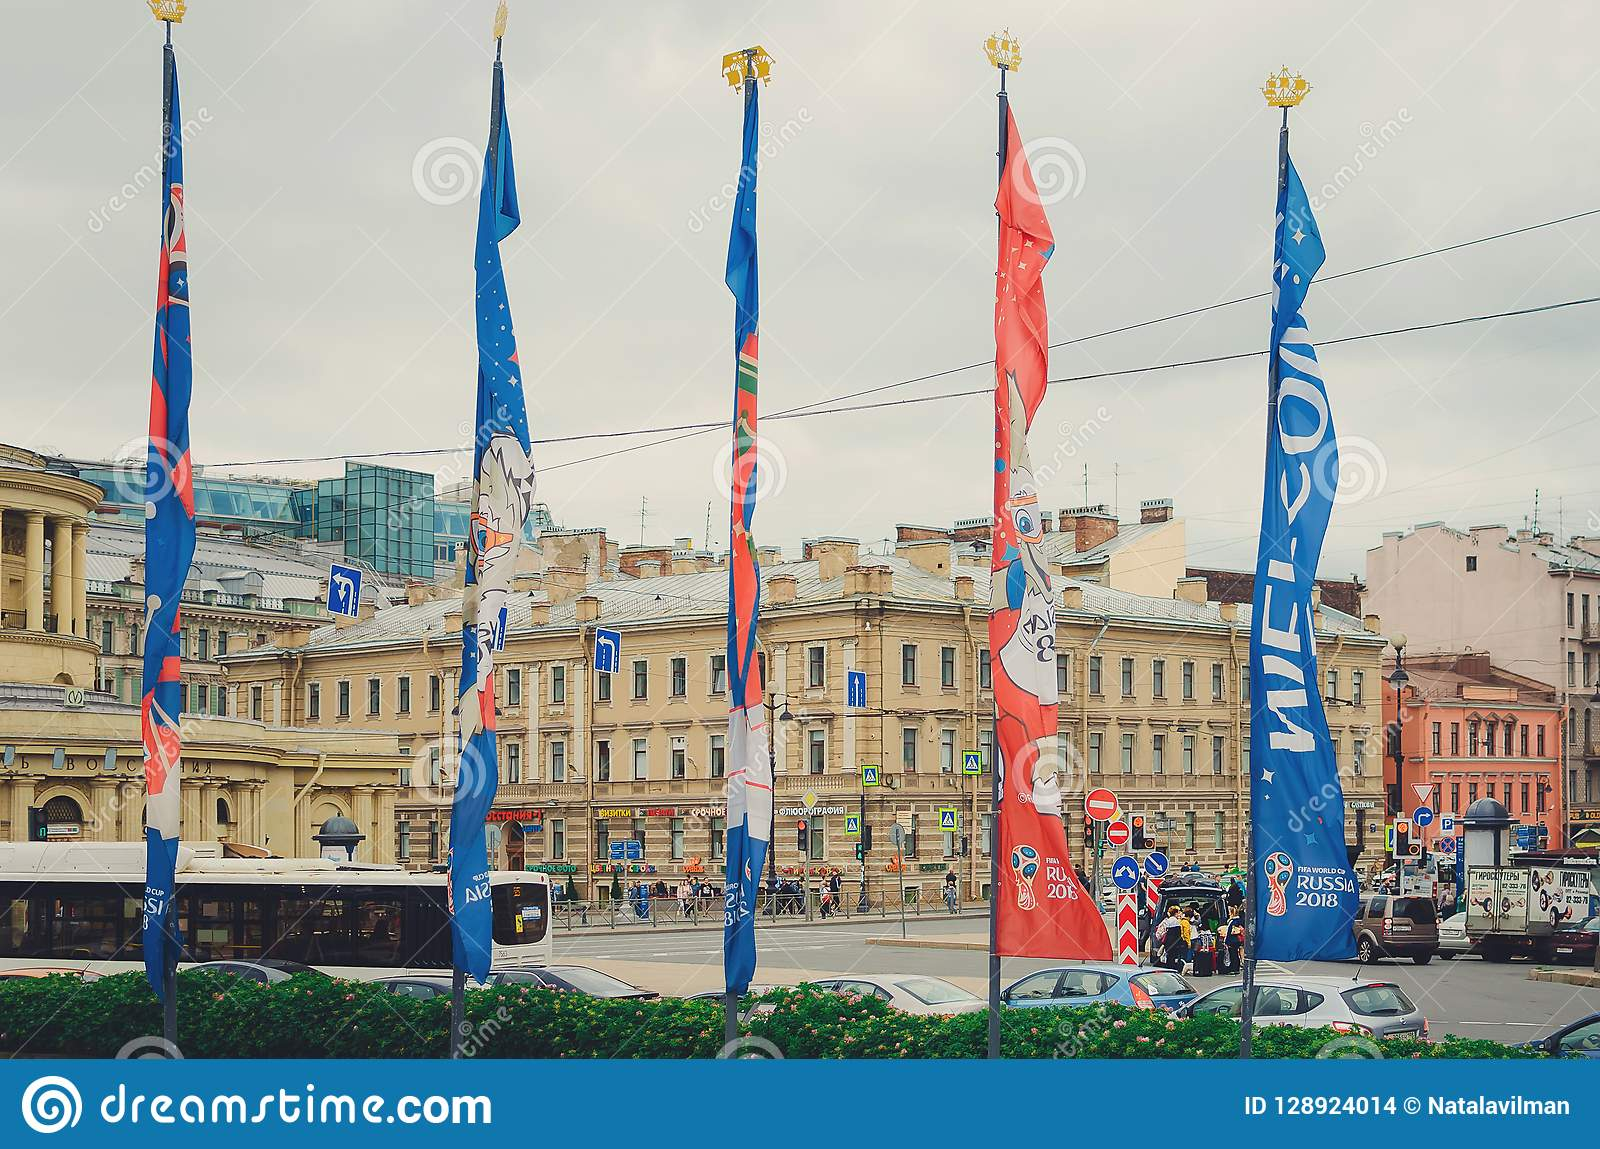 Flags of FIFA World Cup in Russia Flattering in the Wind. Football World Cup Russia 2018